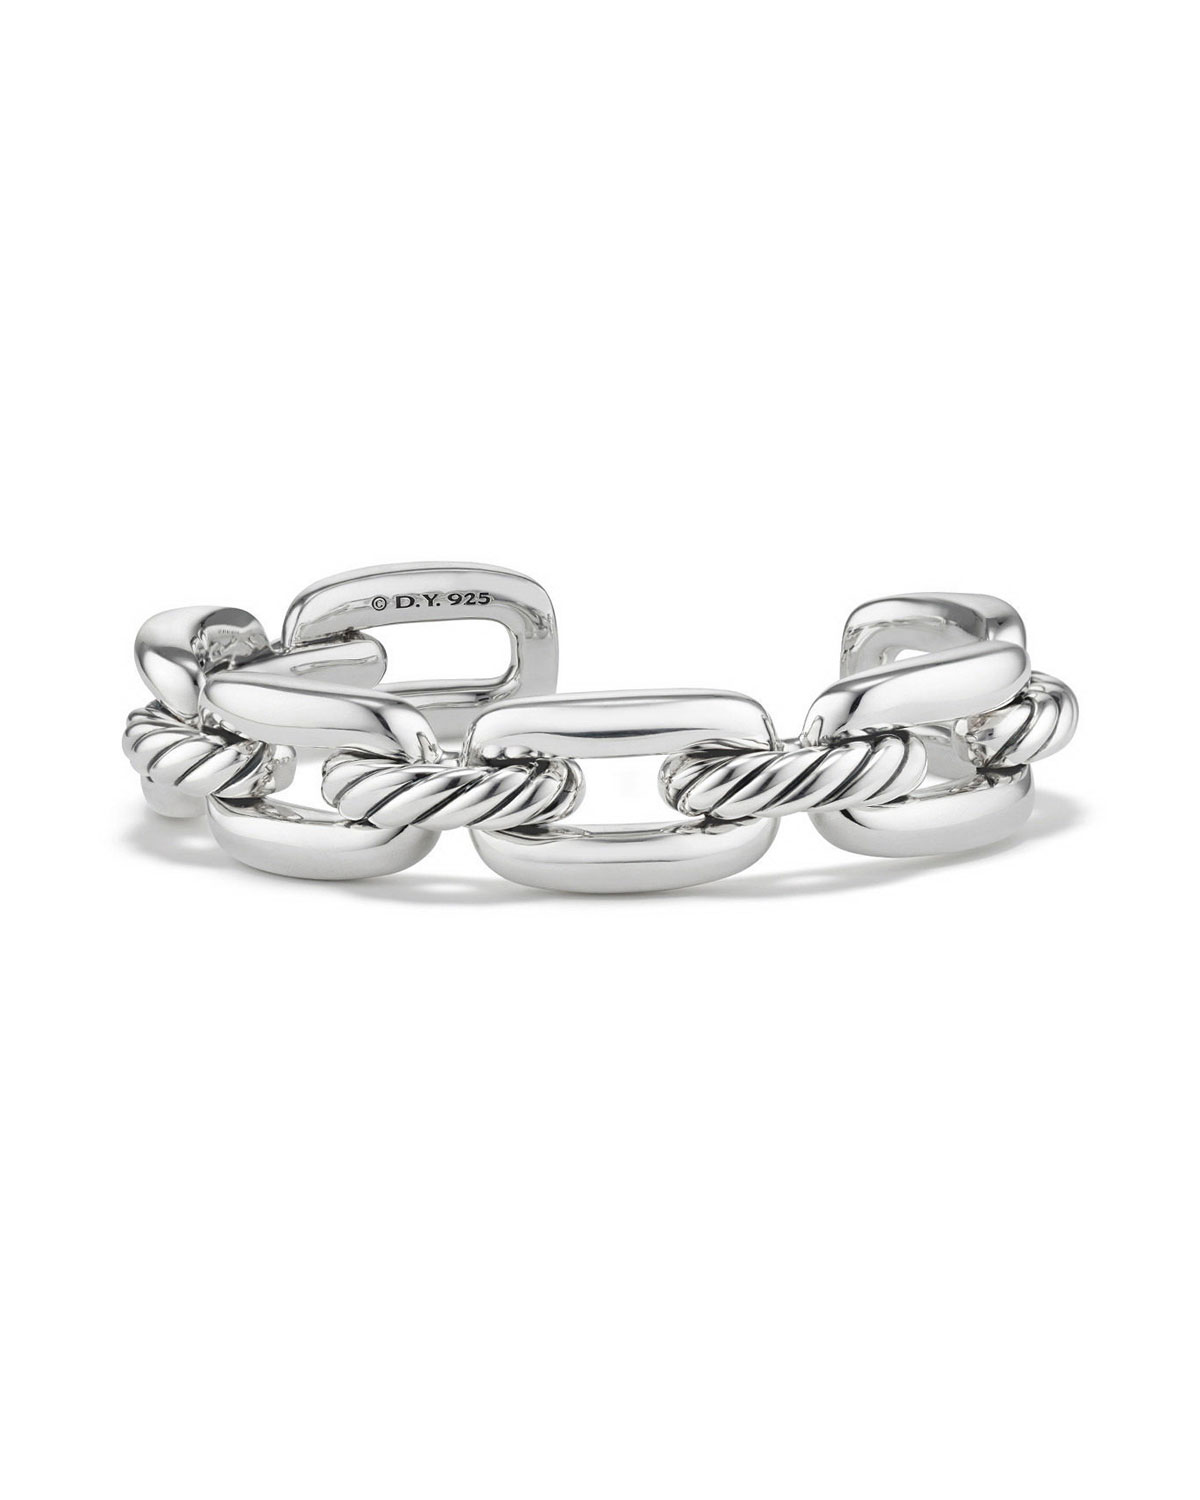 bd421281795c3 David Yurman Wellesley Sterling Silver Link Cuff Bracelet